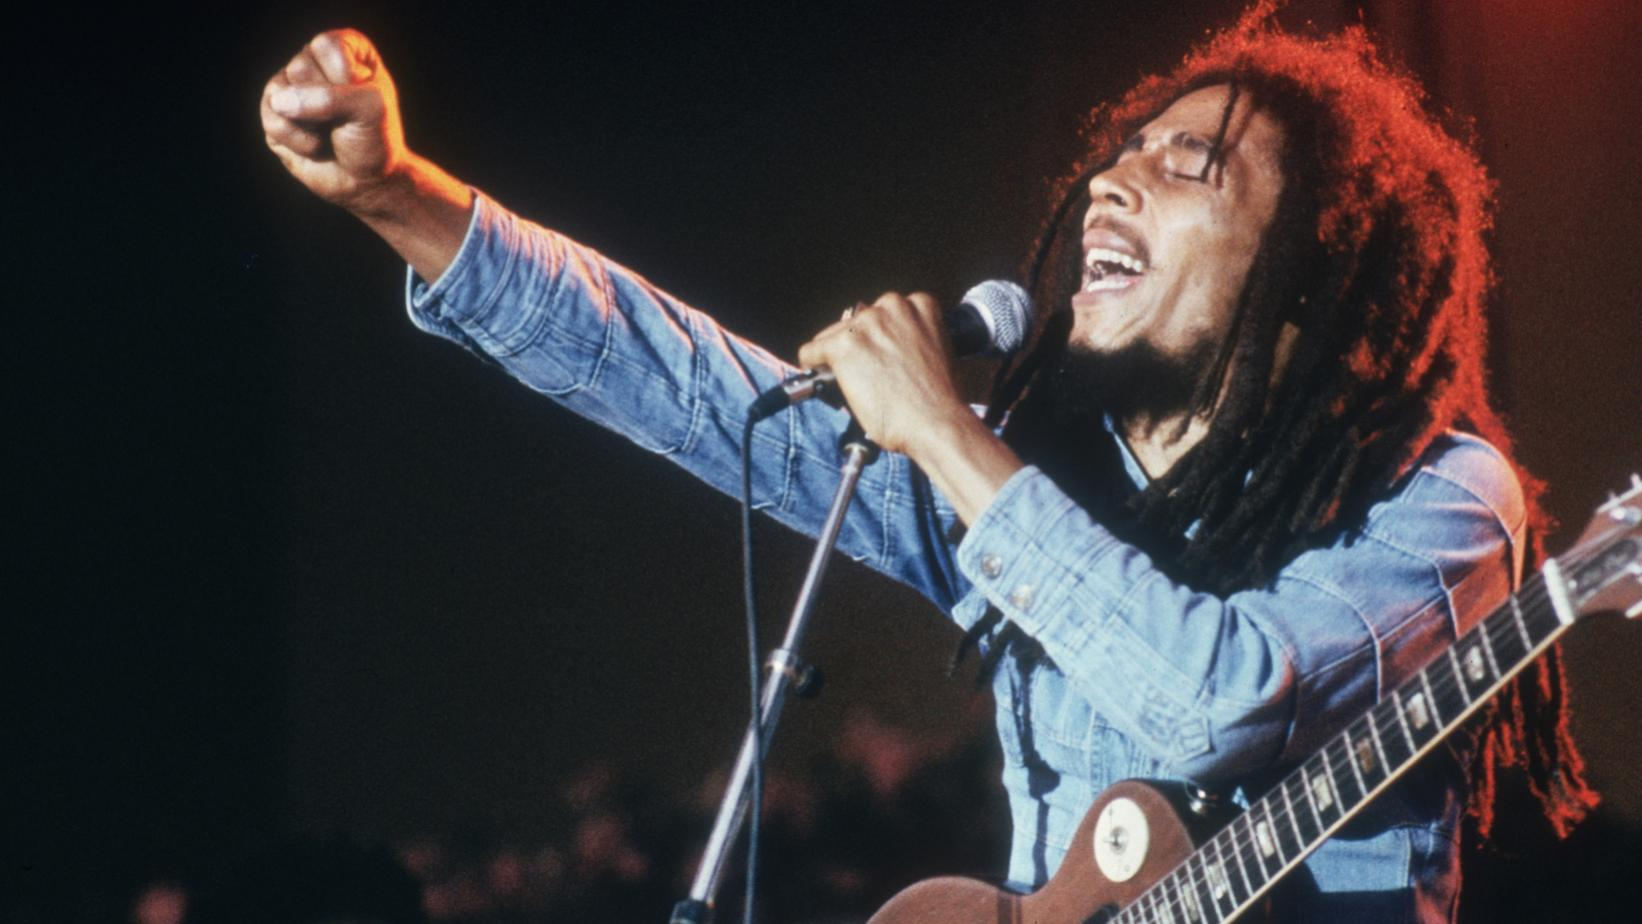 Bob Marley photographed in concert